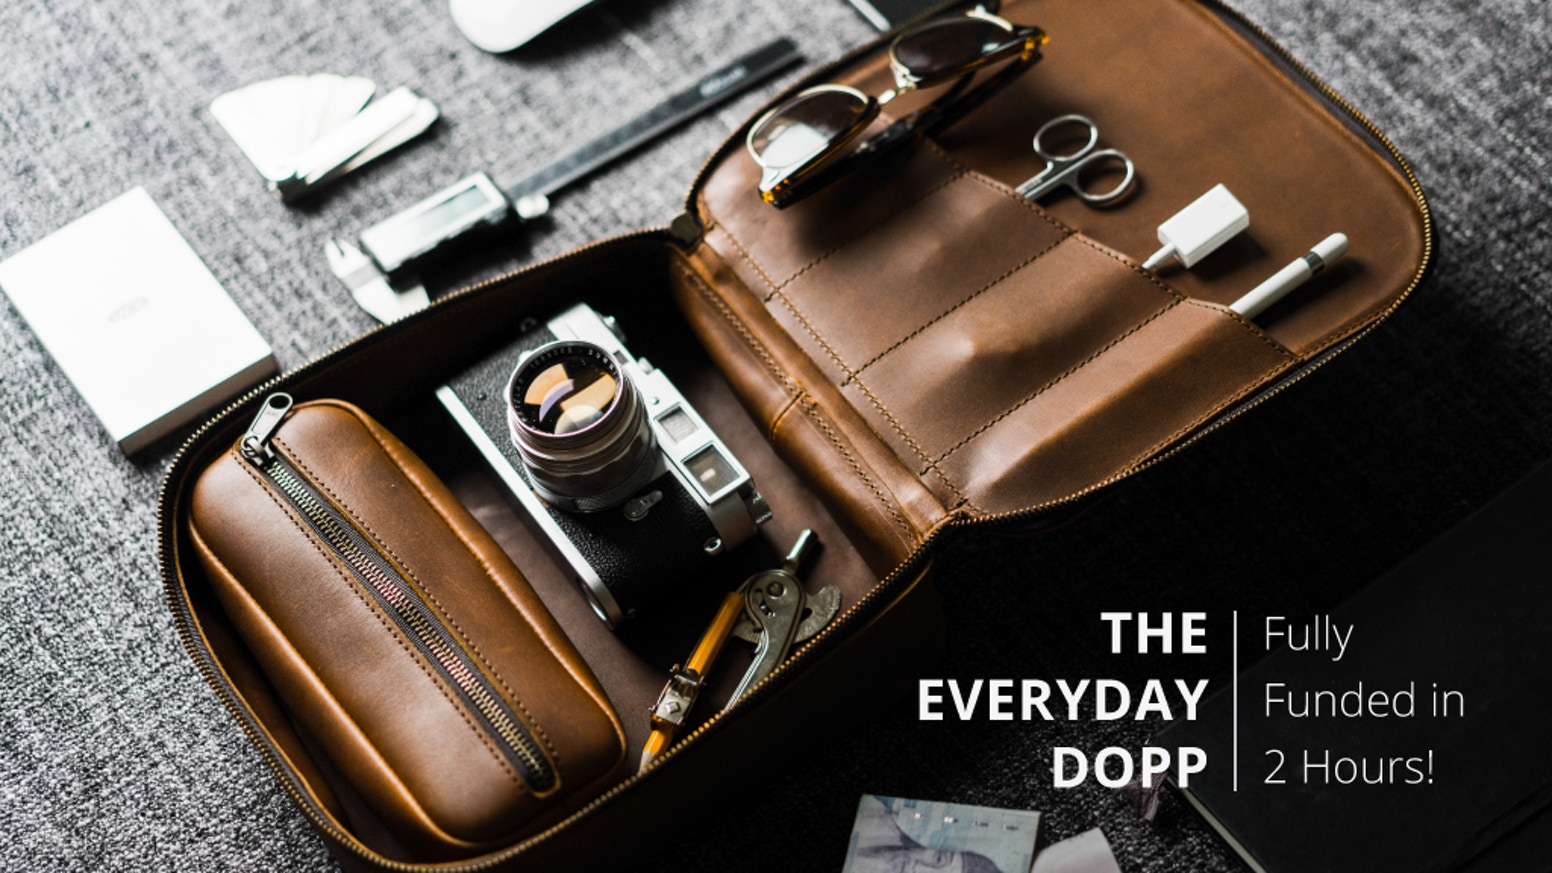 We set out to design the world's best dopp kit - and ended up designing the world's best everyday carry case in the process.